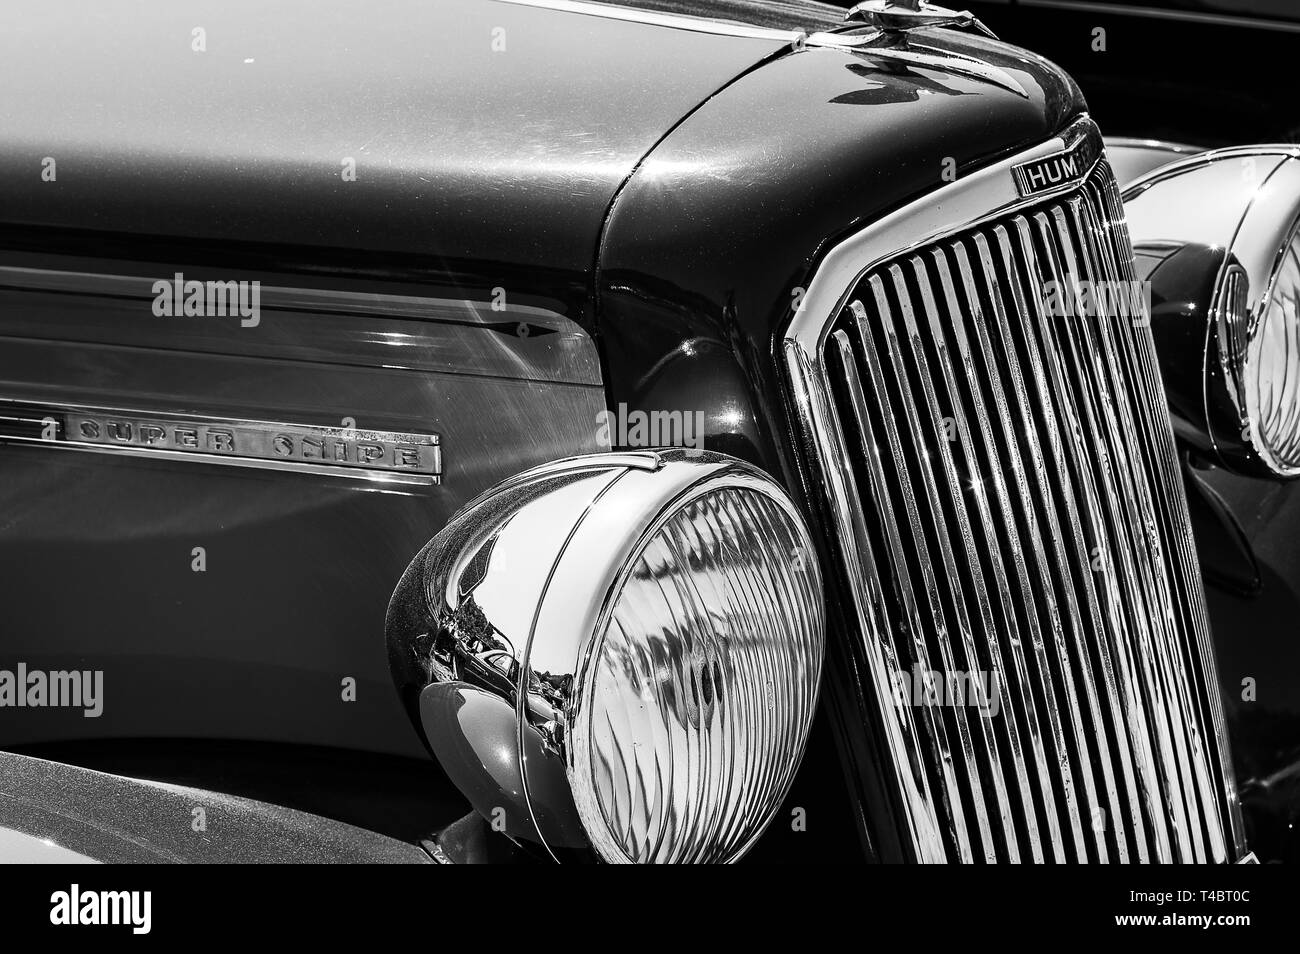 The front of a 1950's Humber Super Snipe on display at a car show - Stock Image